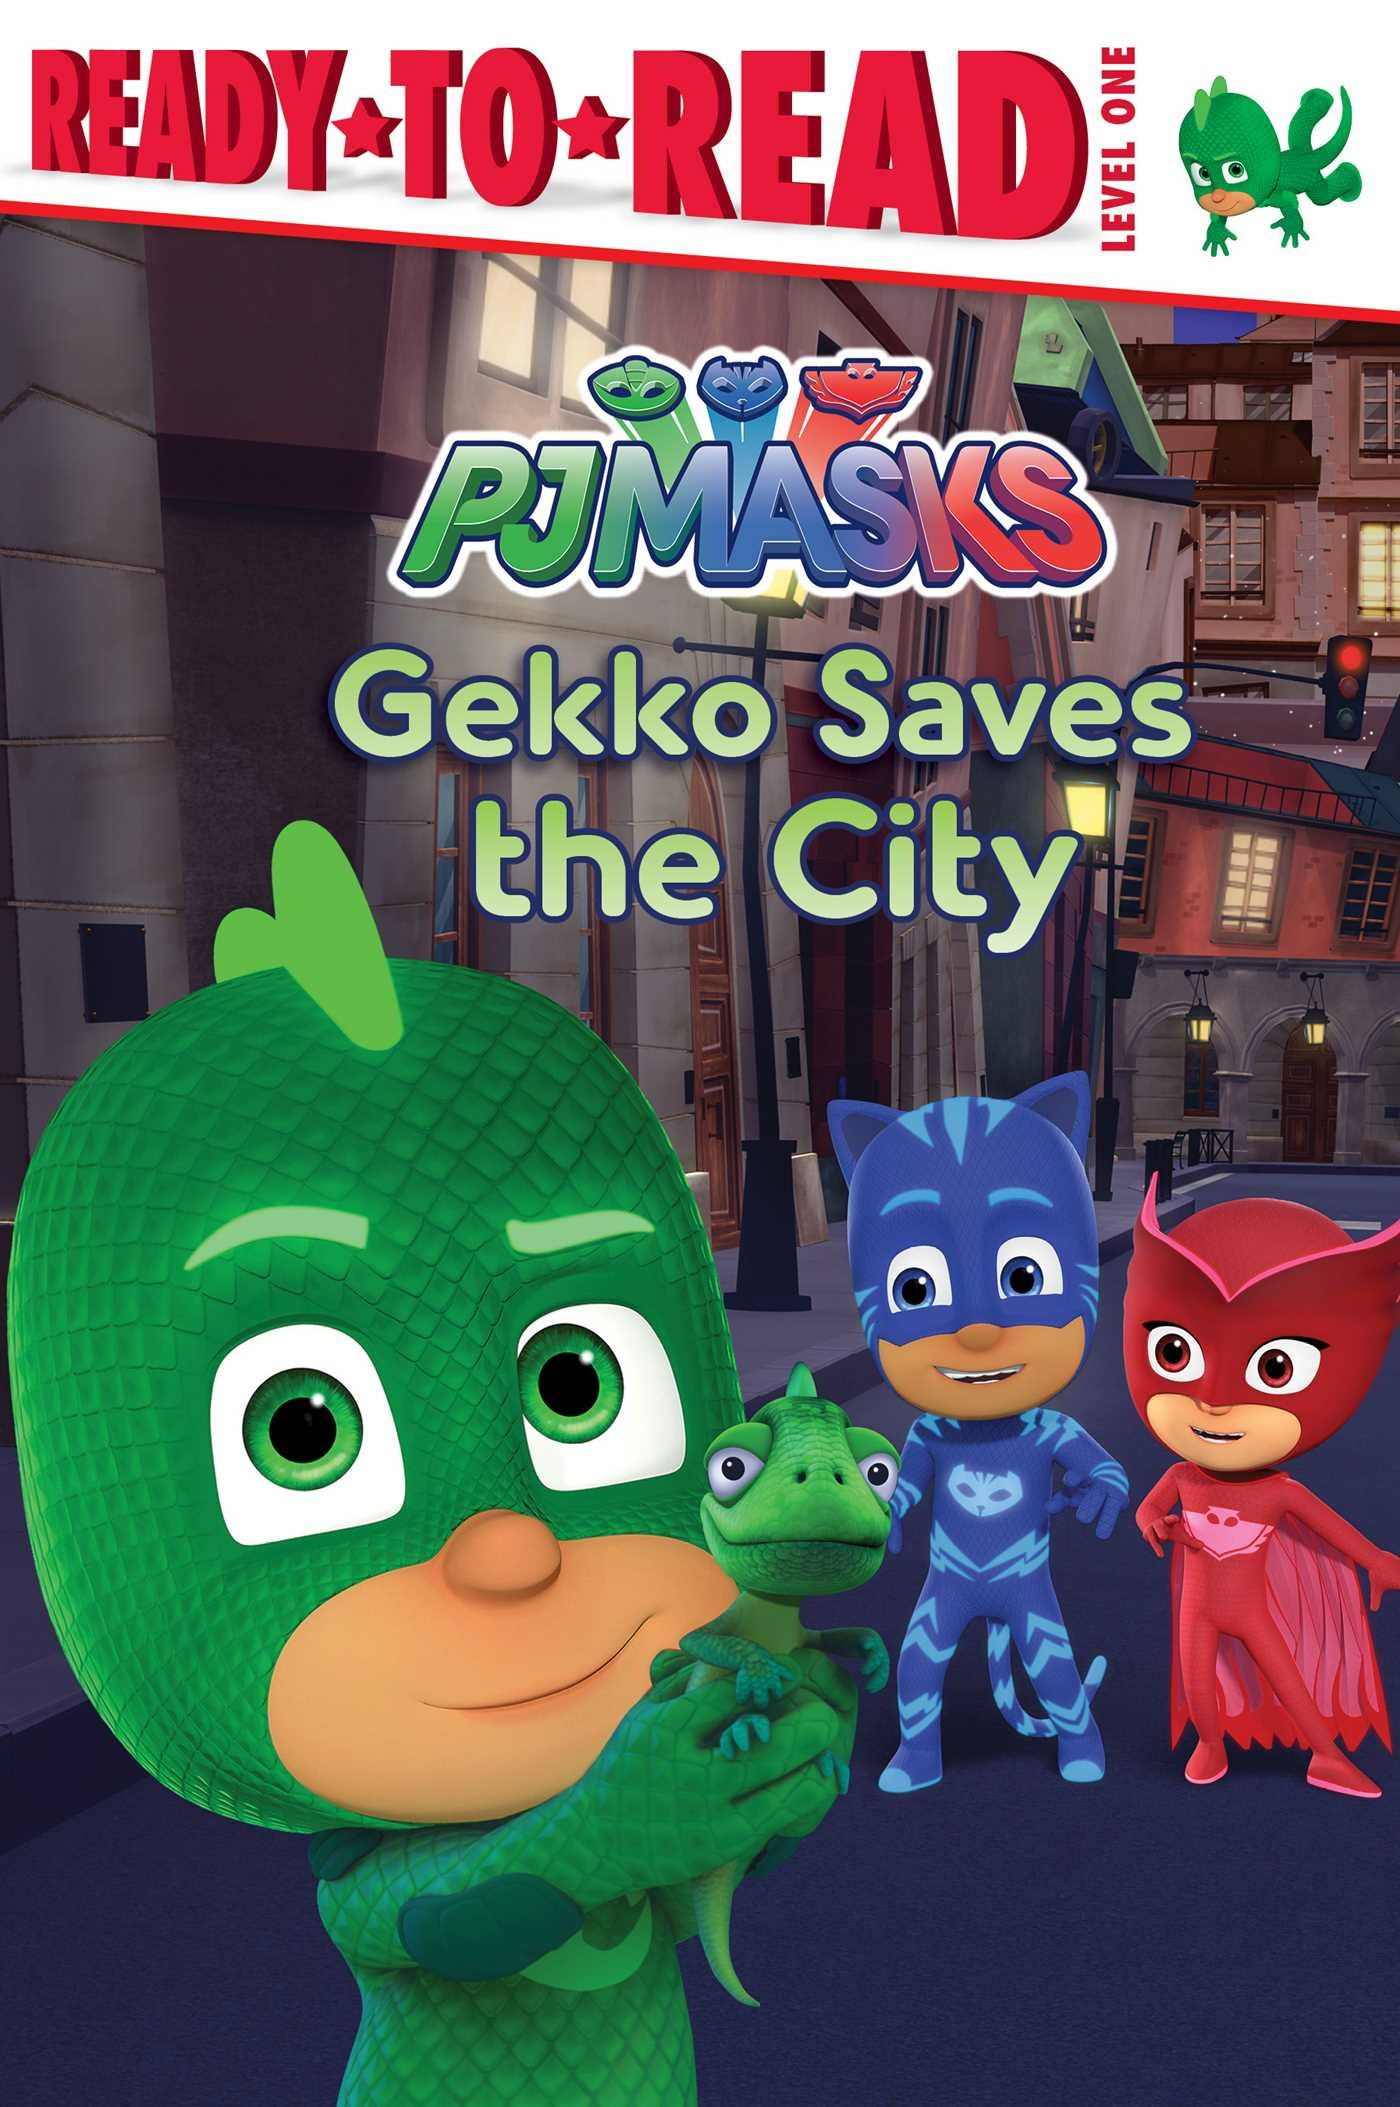 Gekko Saves the City PJ Masks: Ready-to-Read, Level 1: Amazon.es: May Nakamura: Libros en idiomas extranjeros